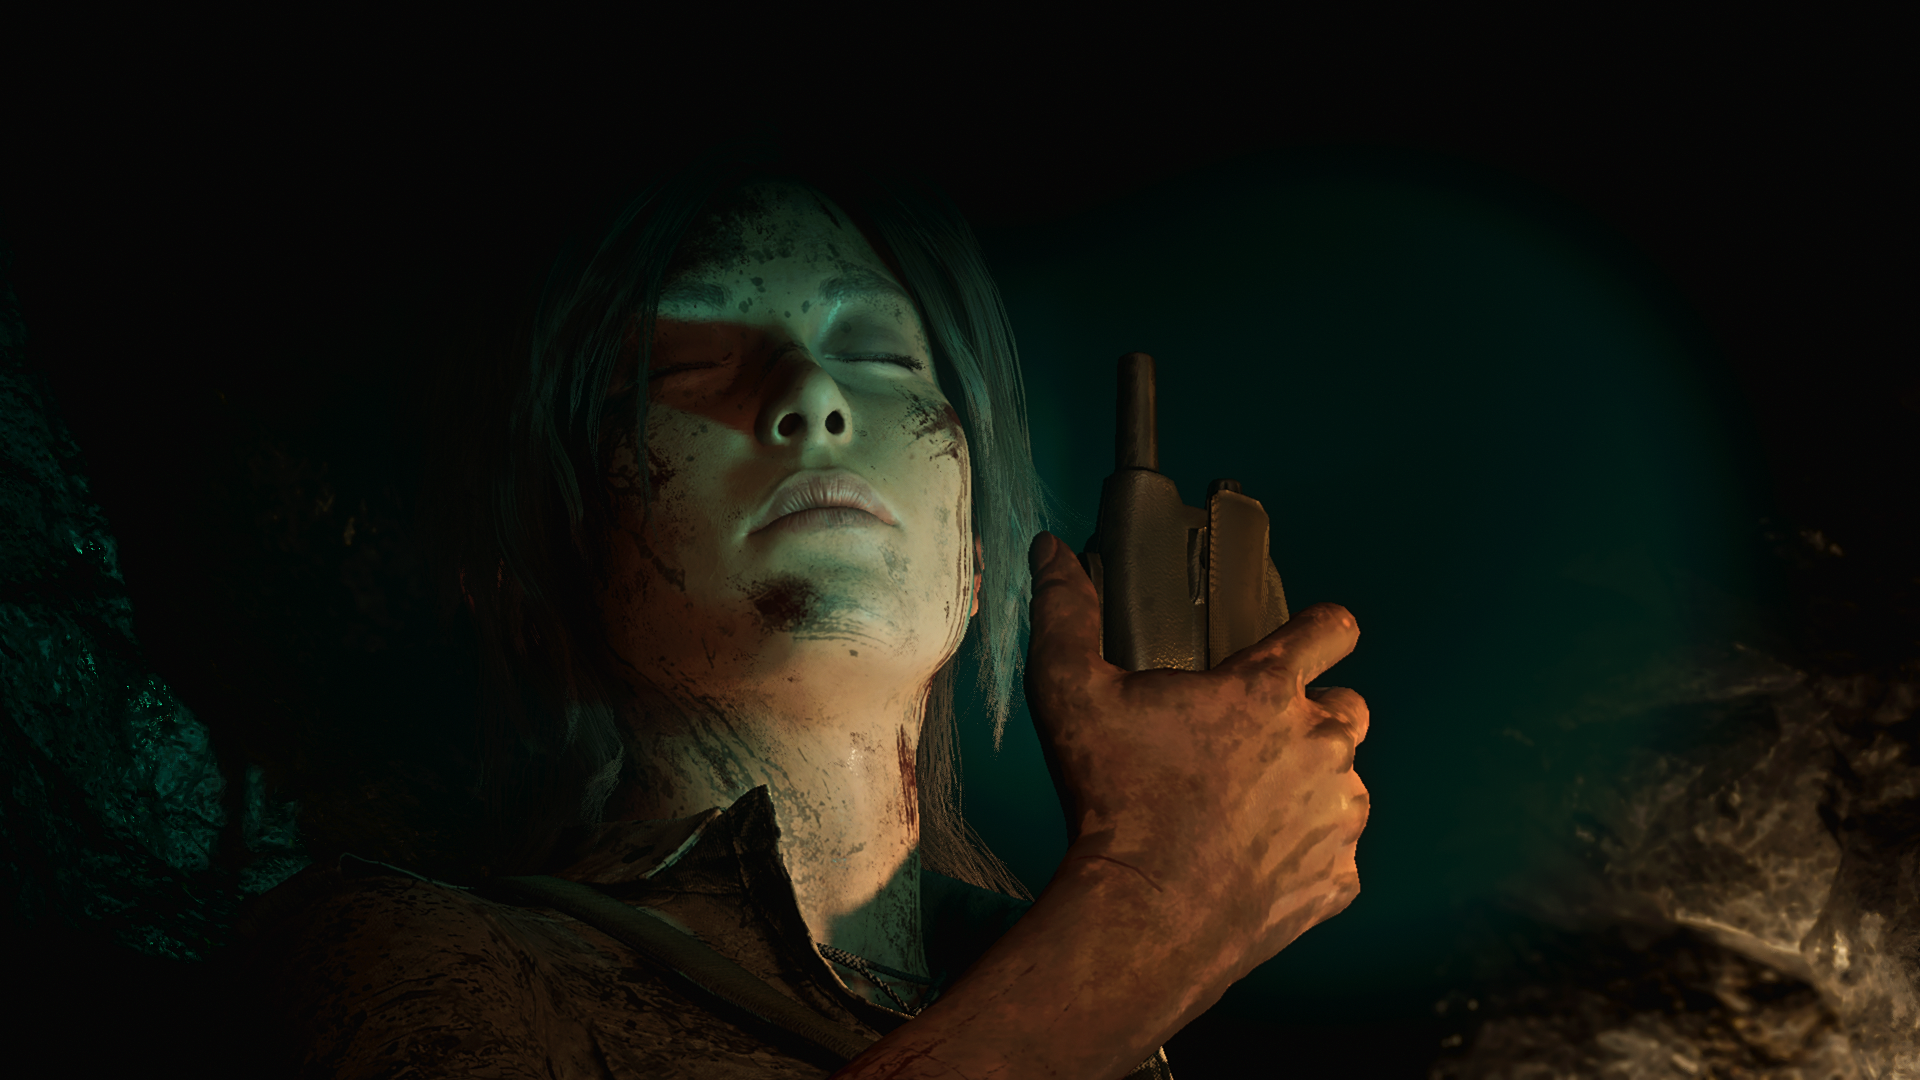 Shadow of the Tomb Raider Screenshot 2018.11.18 - 13.36.17.80.png - Shadow of the Tomb Raider